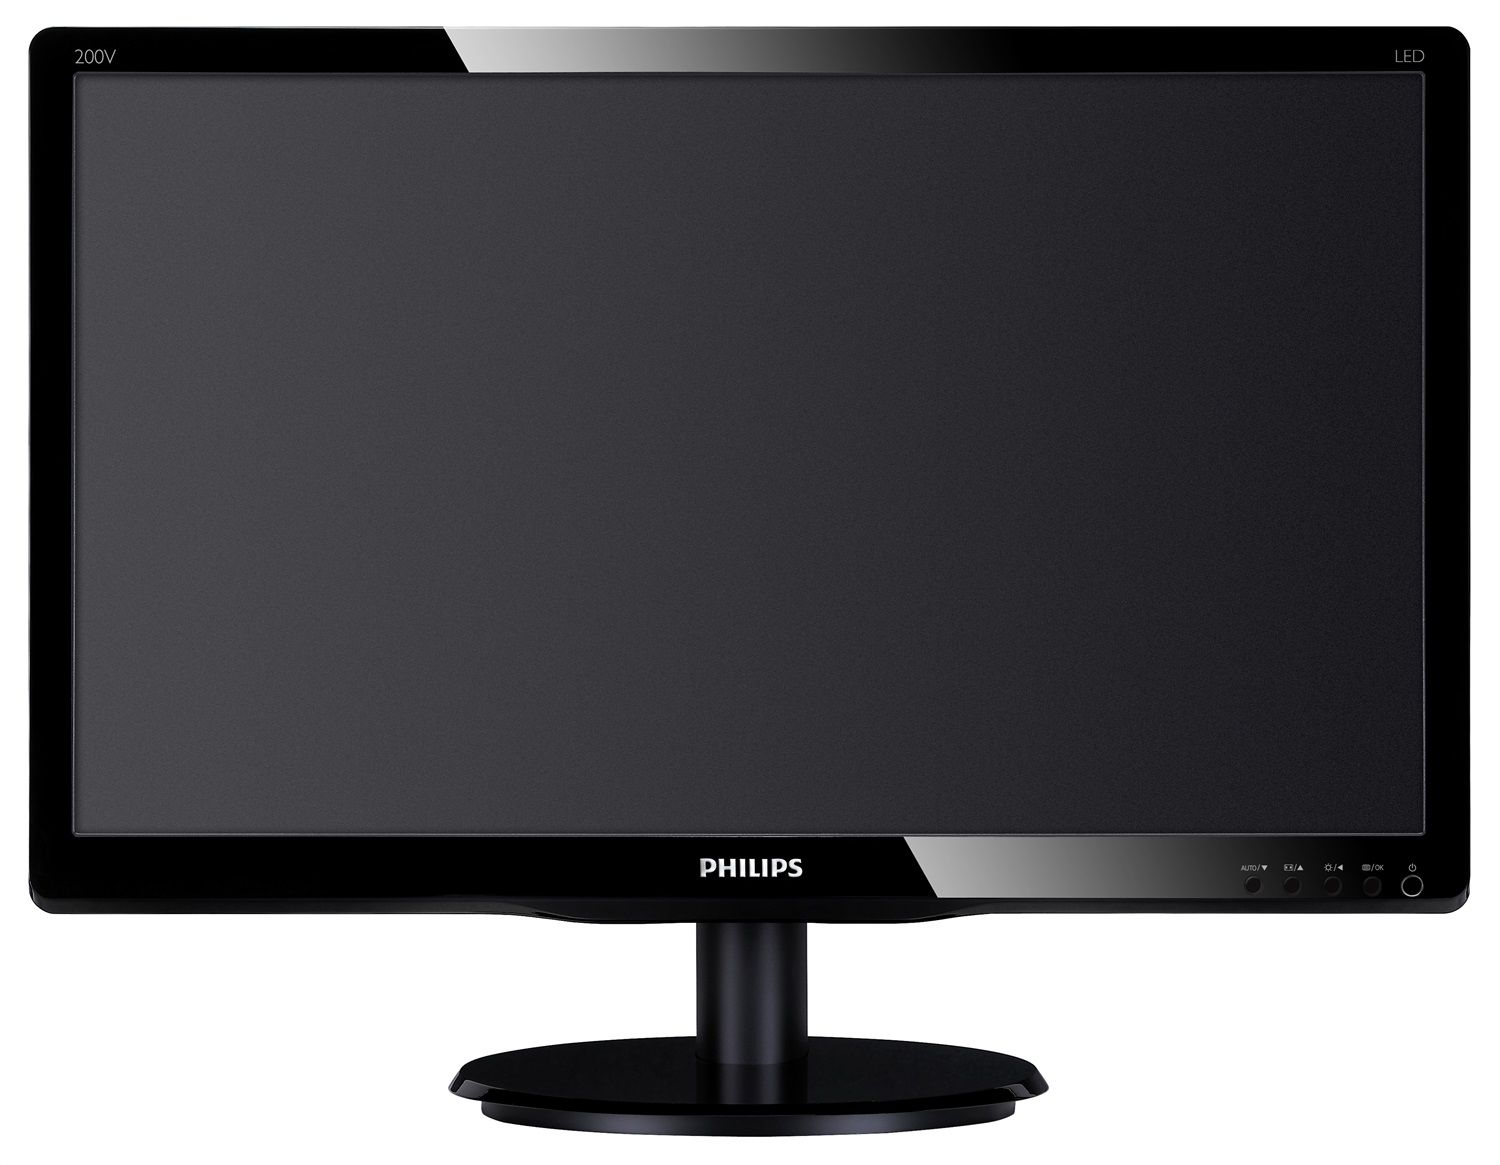 Philips 243V5QHSBA